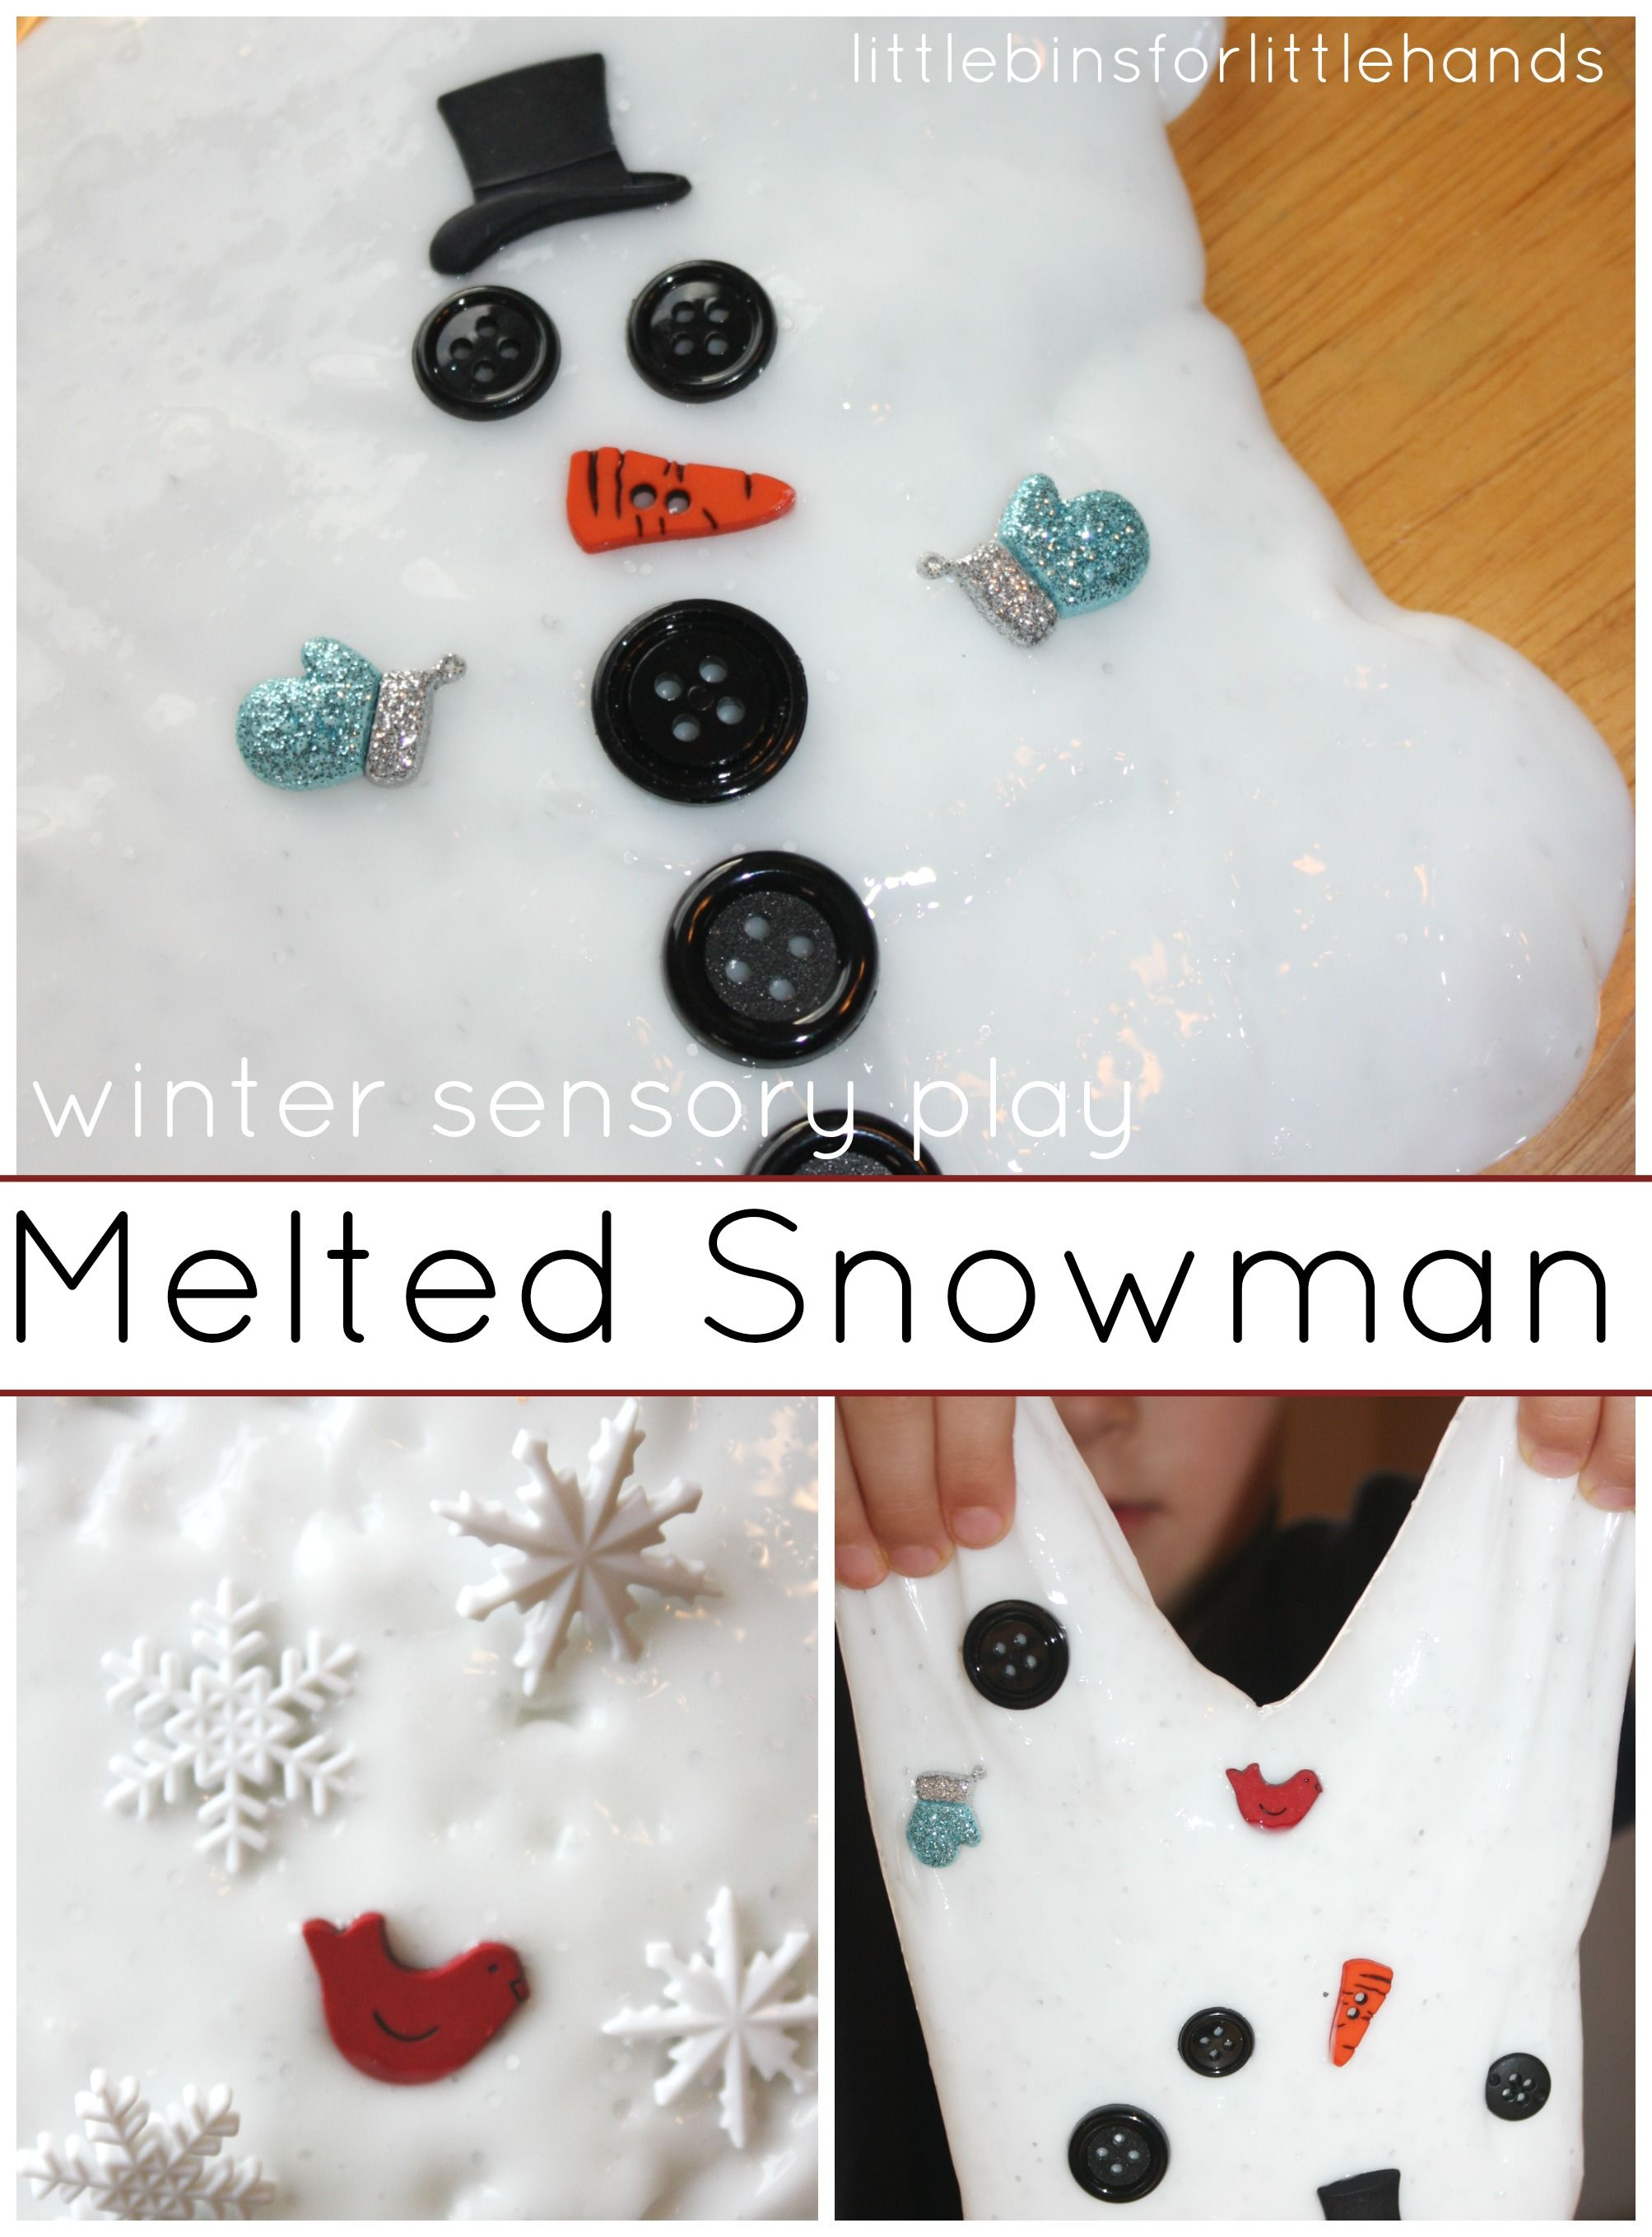 // Melting Snowman Slime Quick And Easy Recipe For Winter Sensory Play We fell in love with slime this year! We have used this homemade, quick and easy slime recipe over and over again and it has not failed us yet! It is so simple, you will have awesome slime in 5 minutes that you can play ...